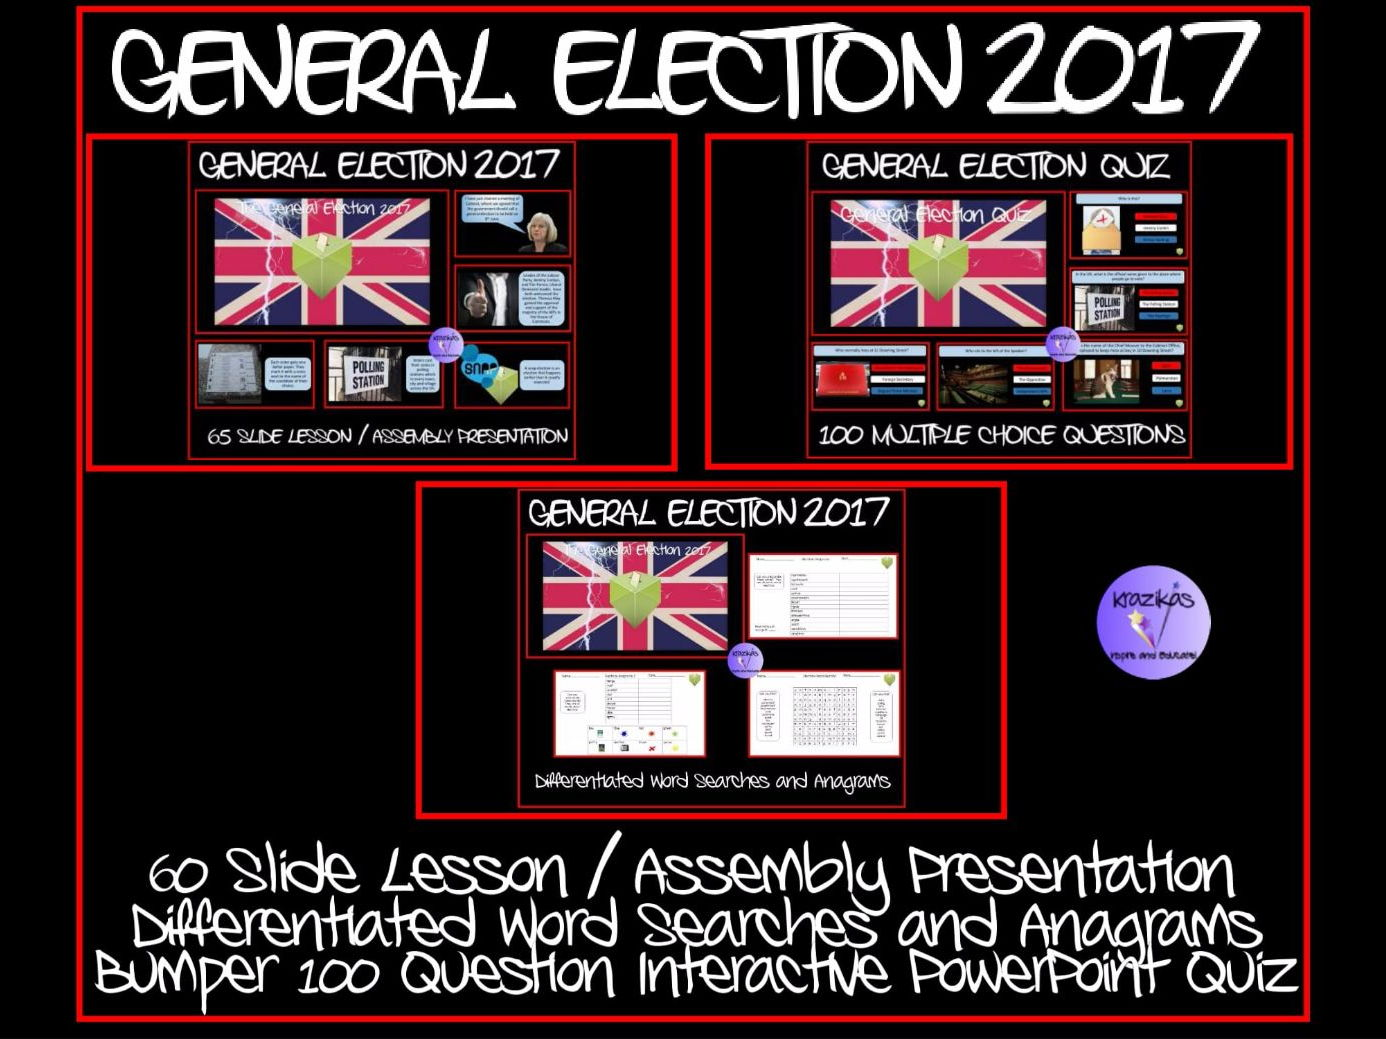 The UK General Election 2017 - Lesson / Assembly Presentation, Bumper 100 Question Quiz, Set of 6 Differentiated Anagrams  and Word Searches